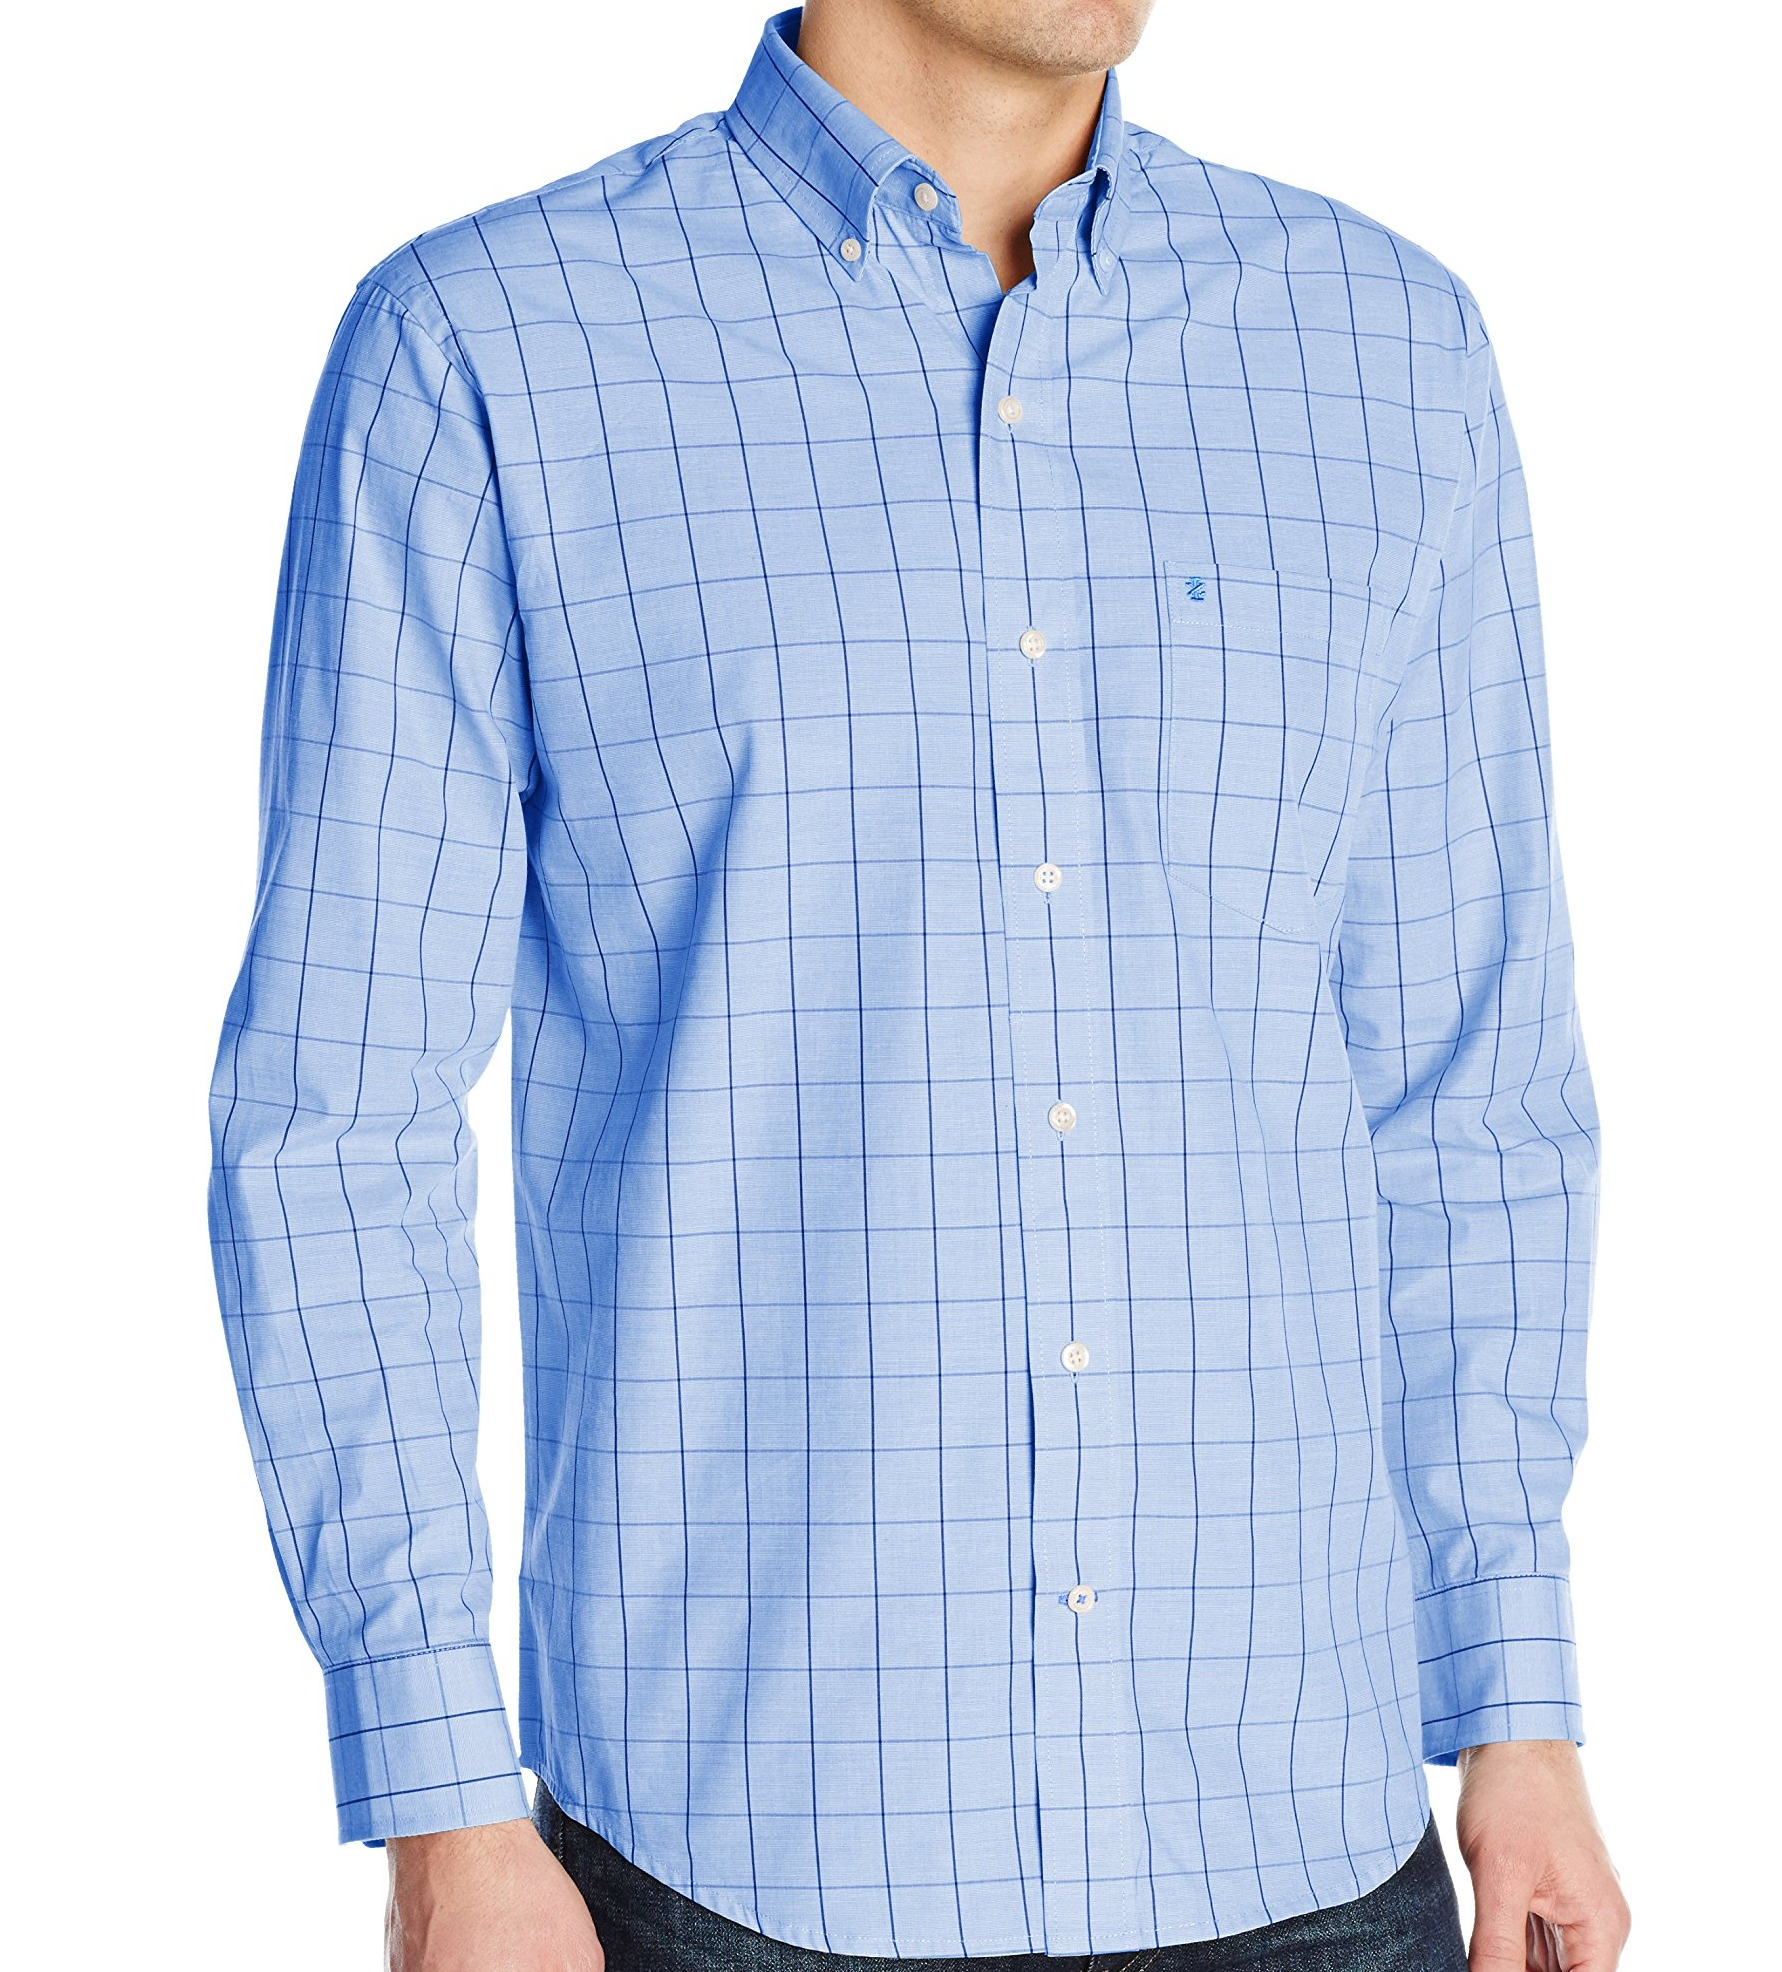 Mens Izod Dress Shirt Sizing Chart - DREAMWORKS